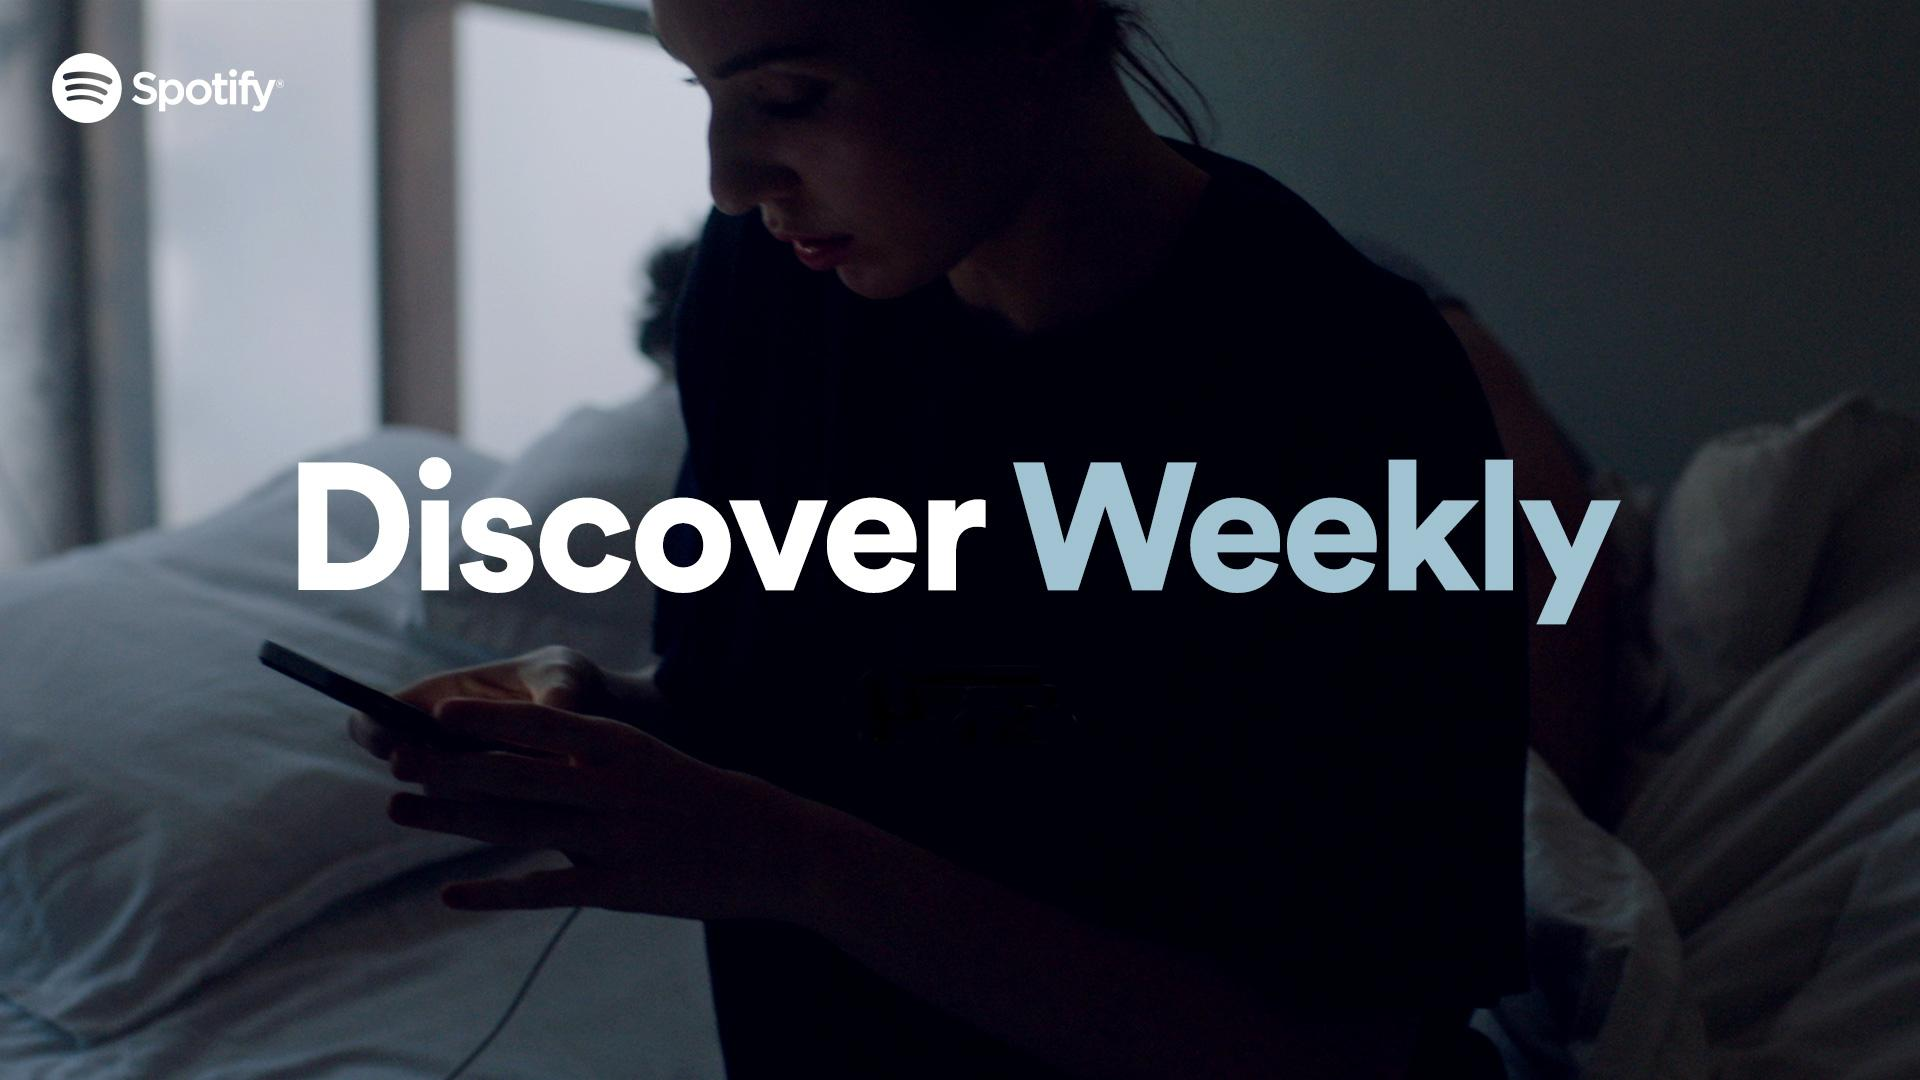 Thumbnail for Spotify: Discover Weekly